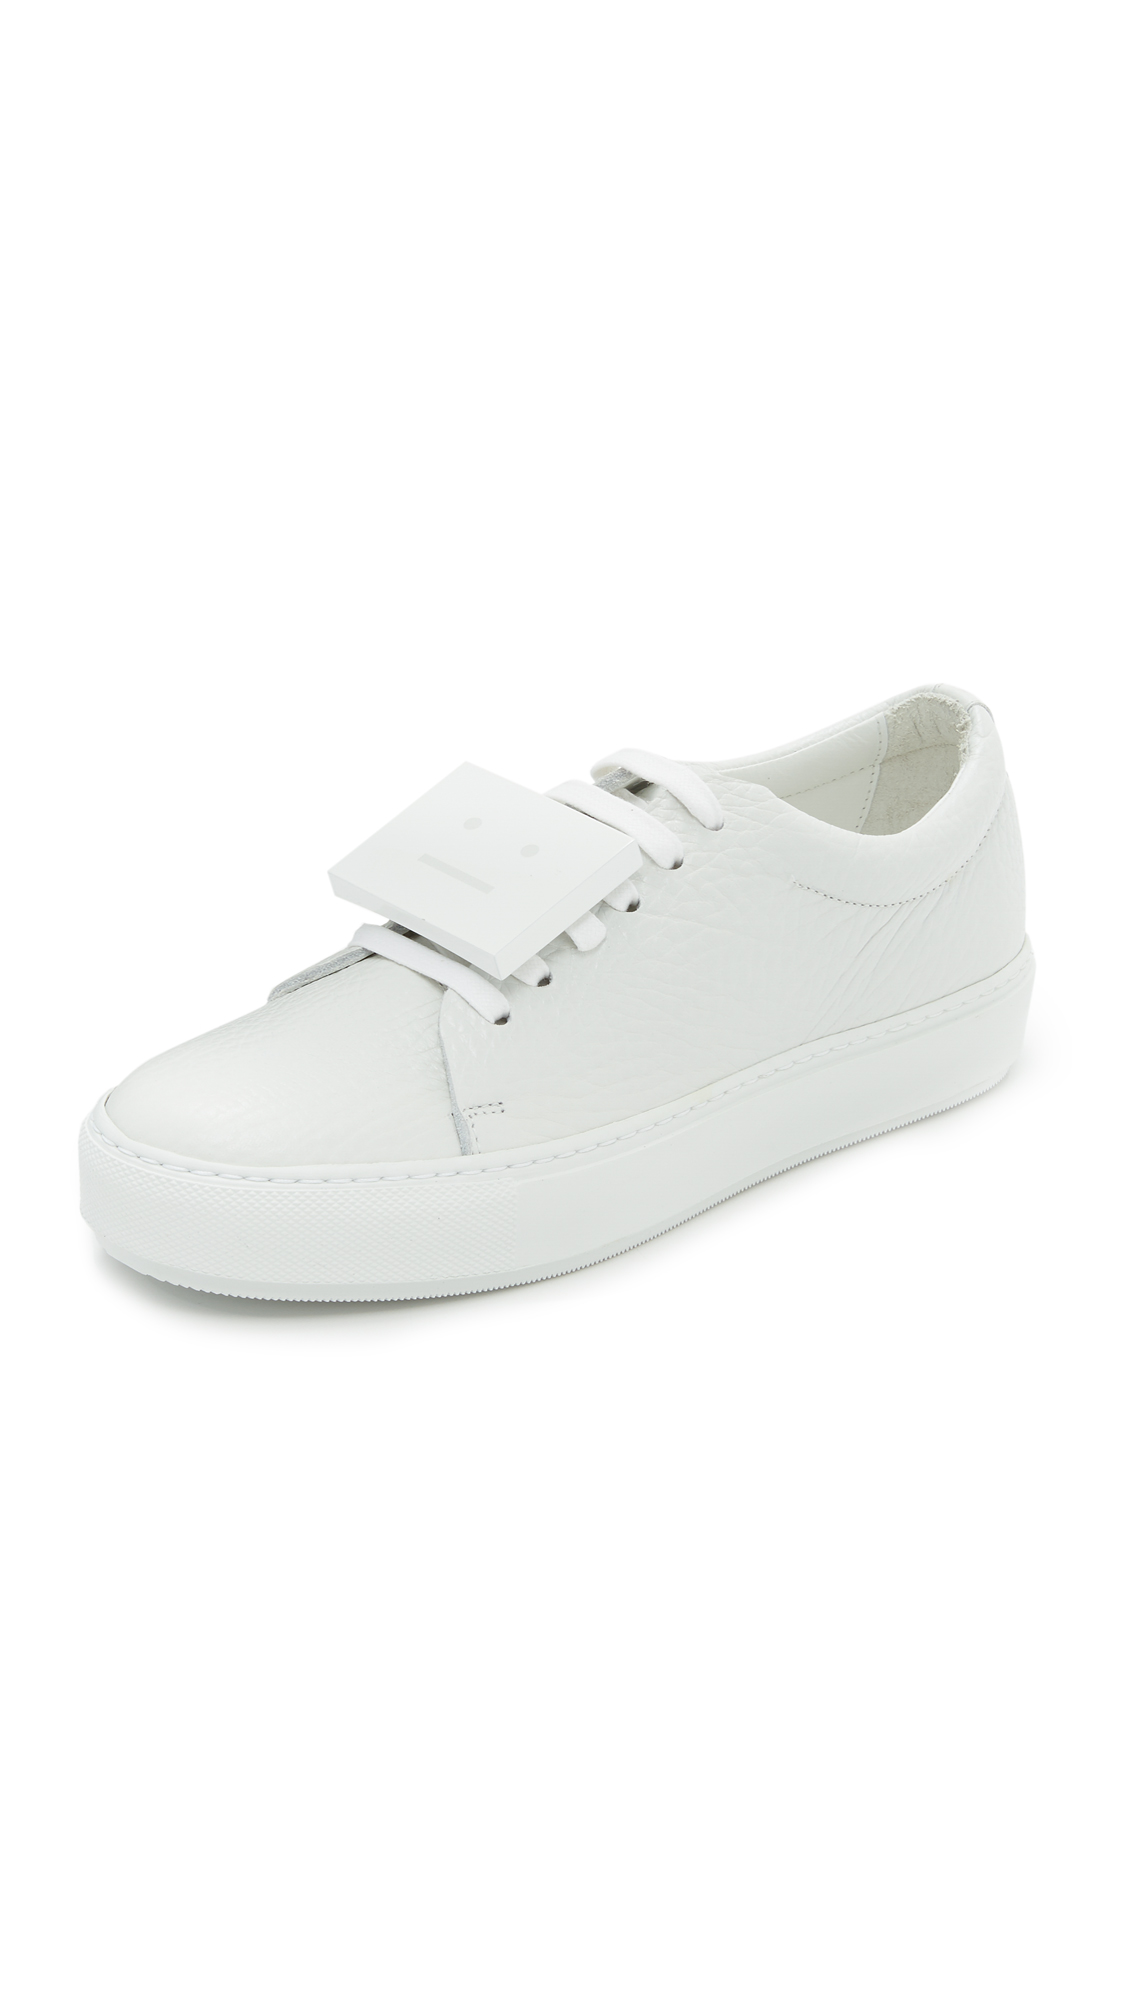 Acne Studios Adriana Grain Sneakers - White at Shopbop